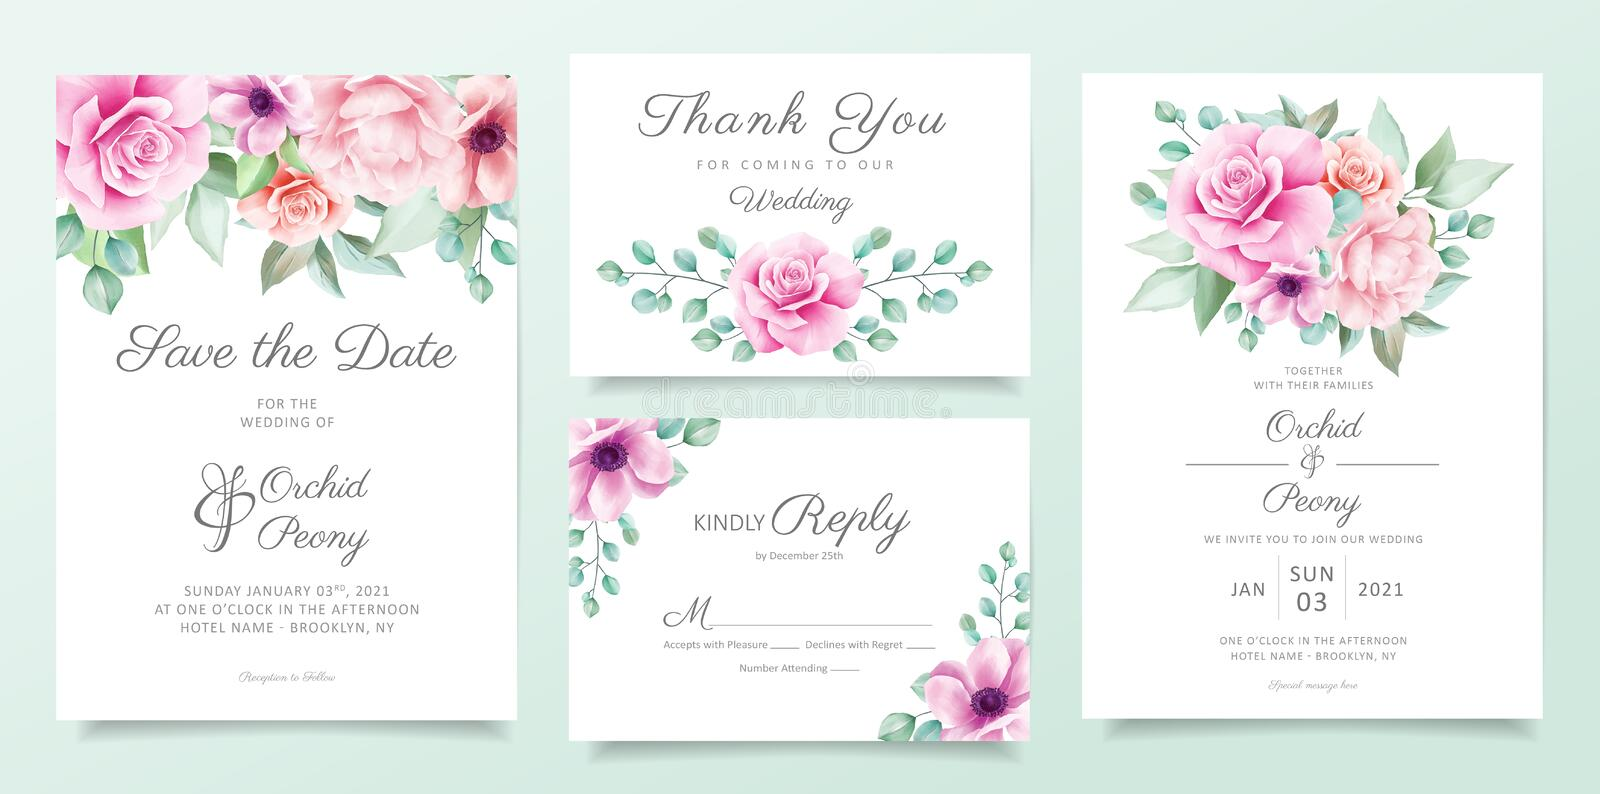 Elegant floral wedding invitation card template set with purple and pink flowers, leaves decoration. Botanical card background. Bundle vector royalty free illustration